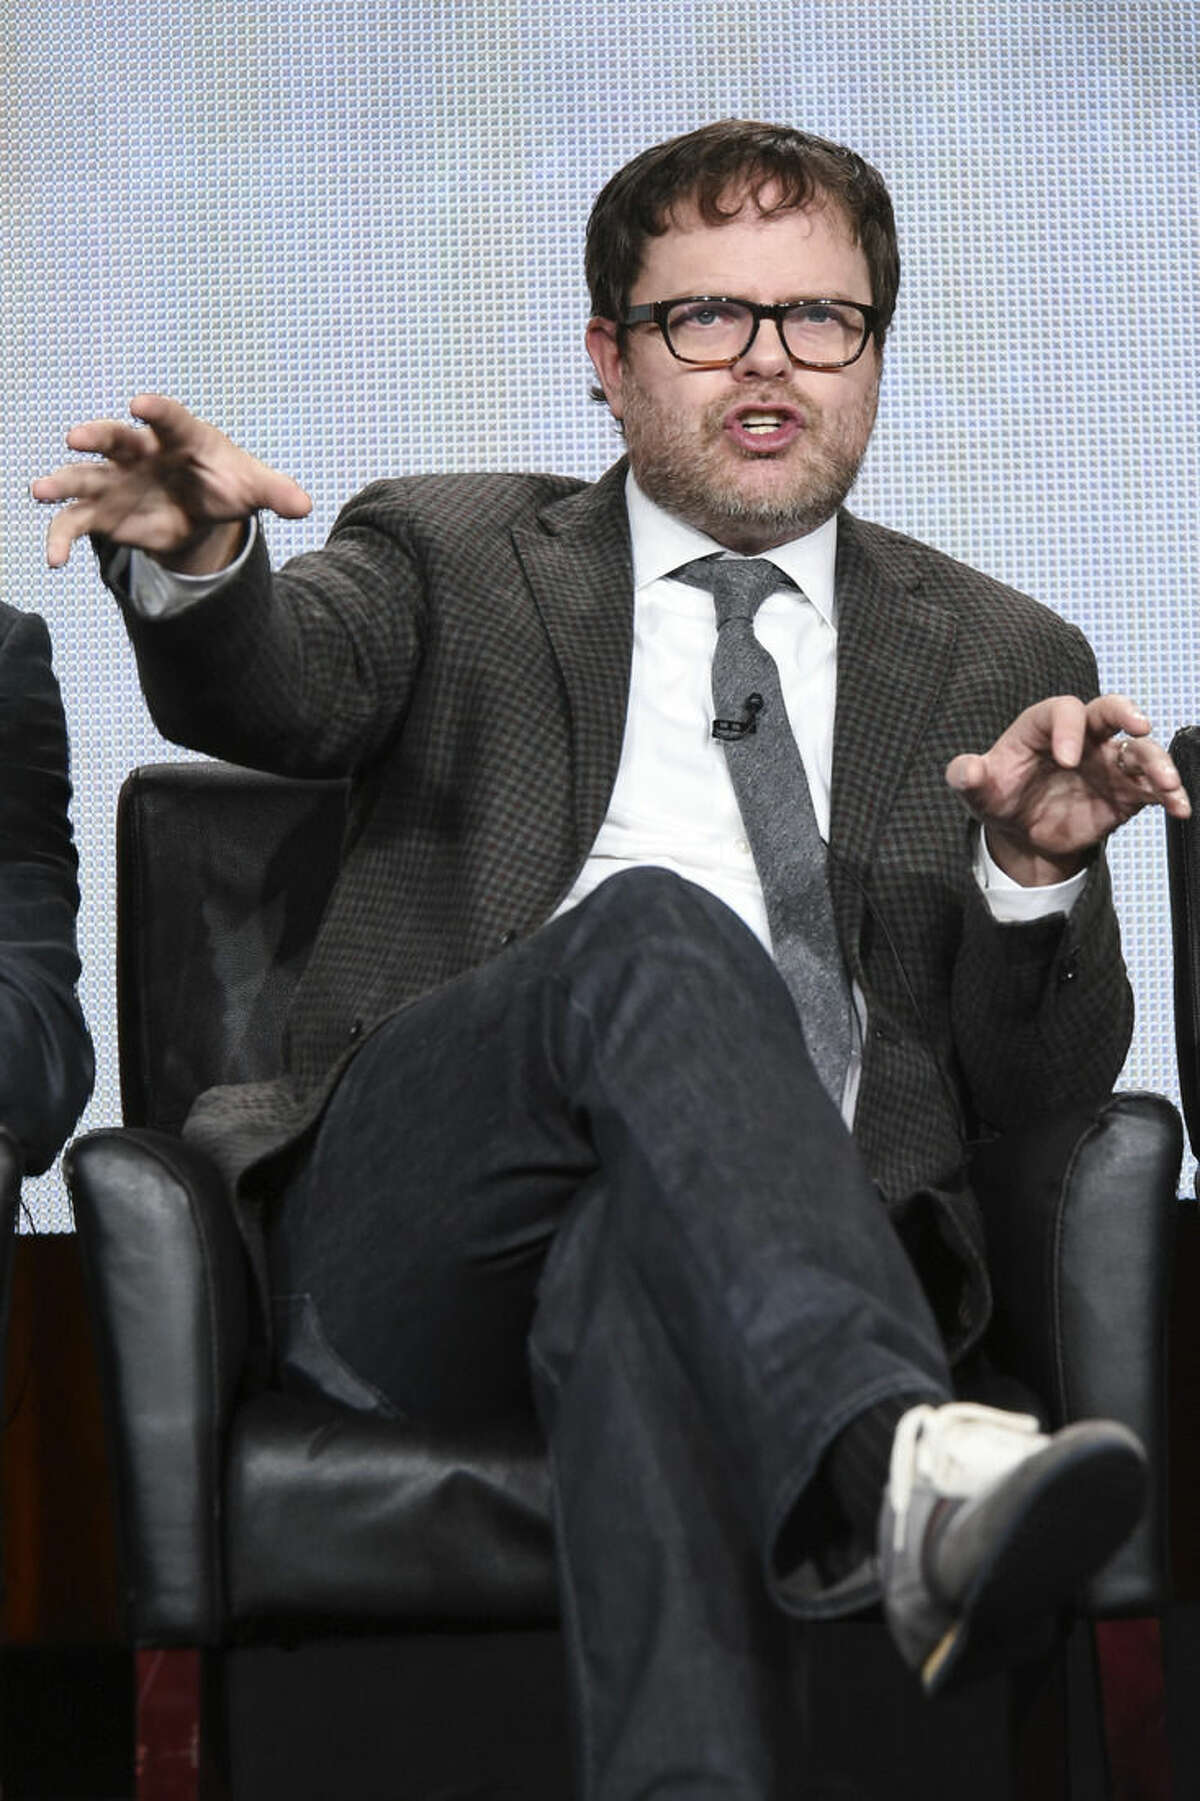 """Rainn Wilson speaks on stage during the """"Backstrom"""" panel at the Fox 2015 Winter TCA on Saturday Jan. 17, 2015, in Pasadena, Calif. (Photo by Richard Shotwell/Invision/AP)"""